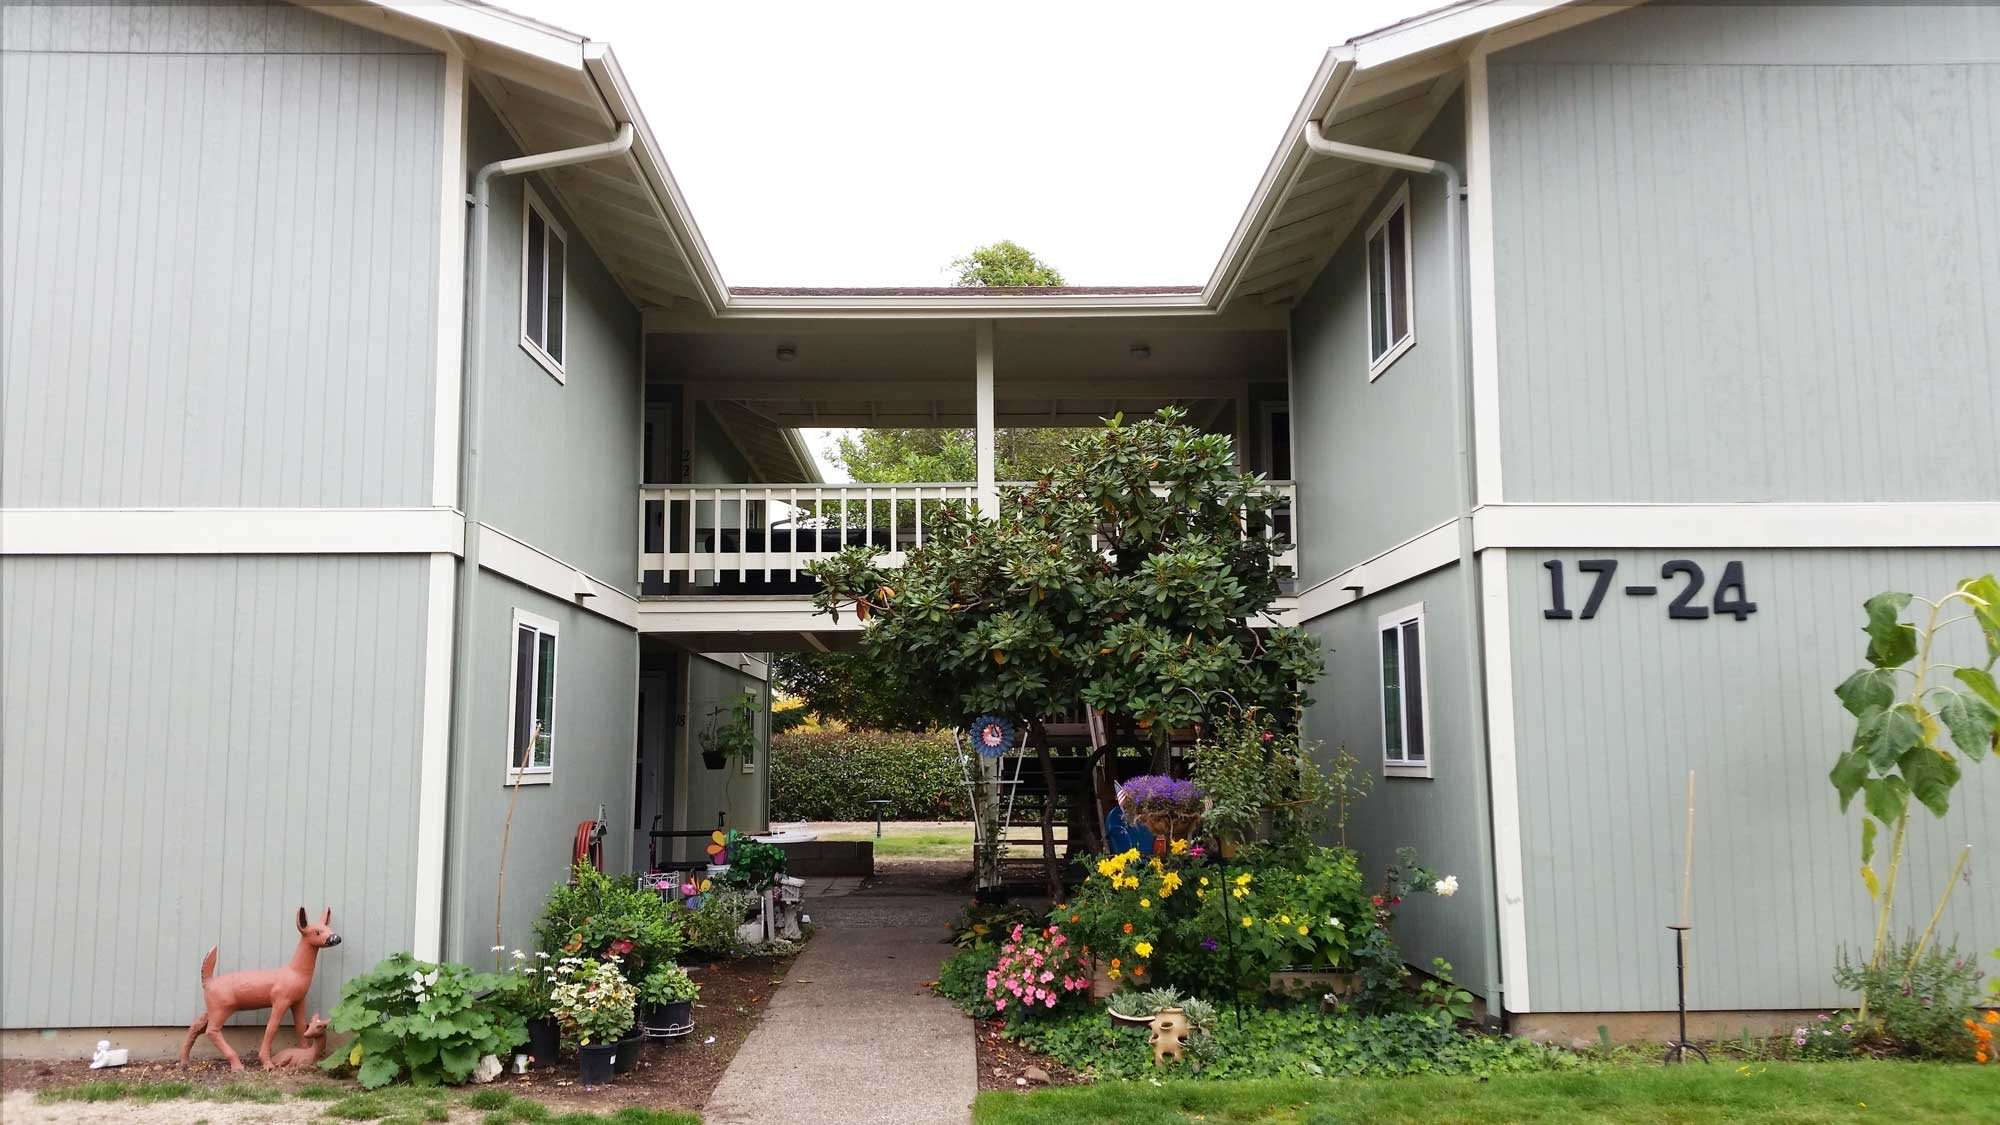 Image of Santiam Terrace Apartments